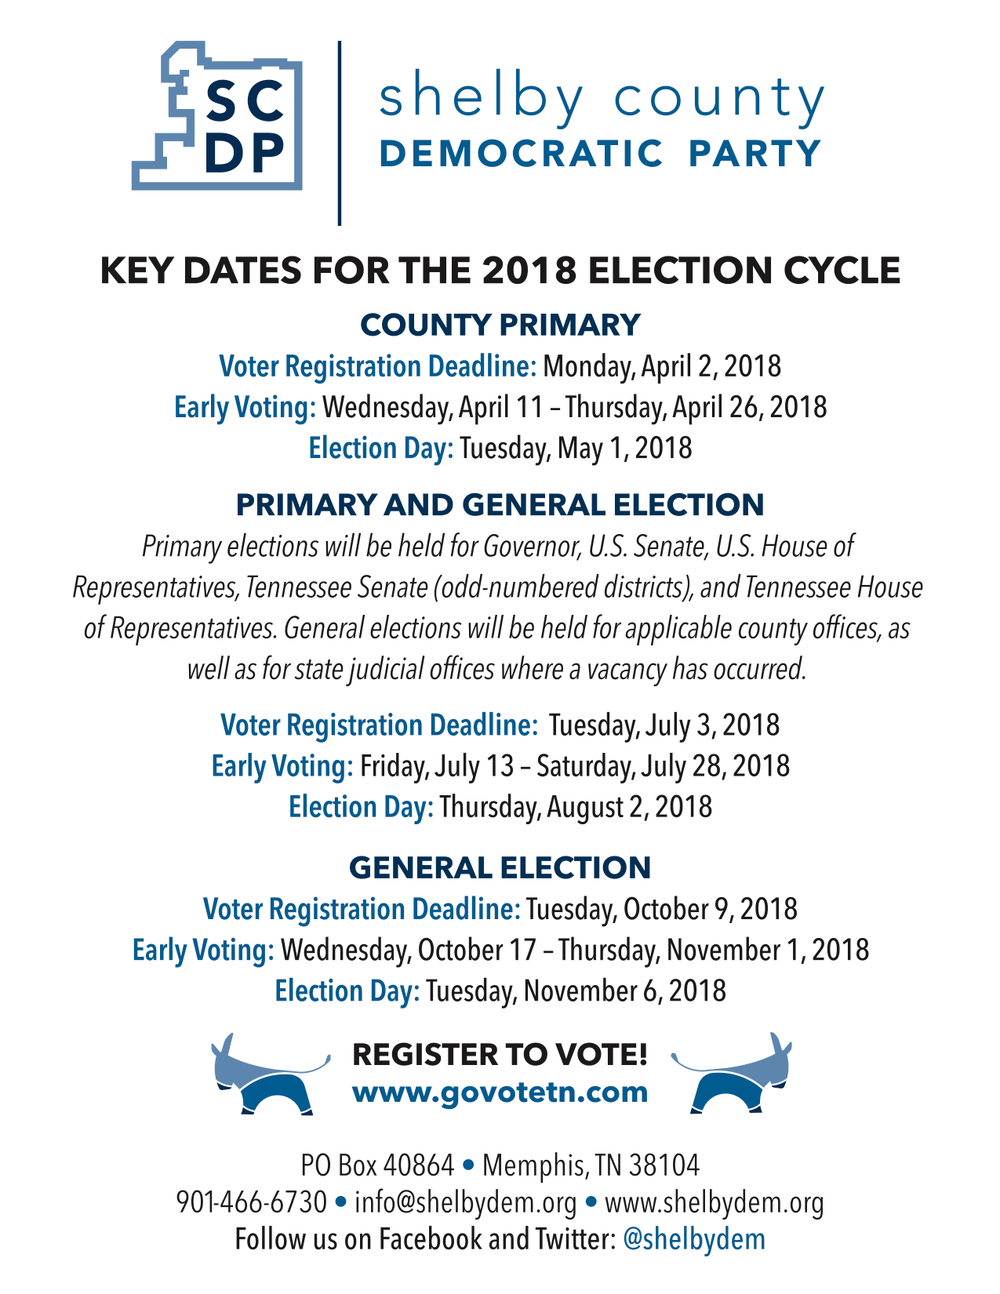 Thanks to SCDP for this reference guide to the election cycle!